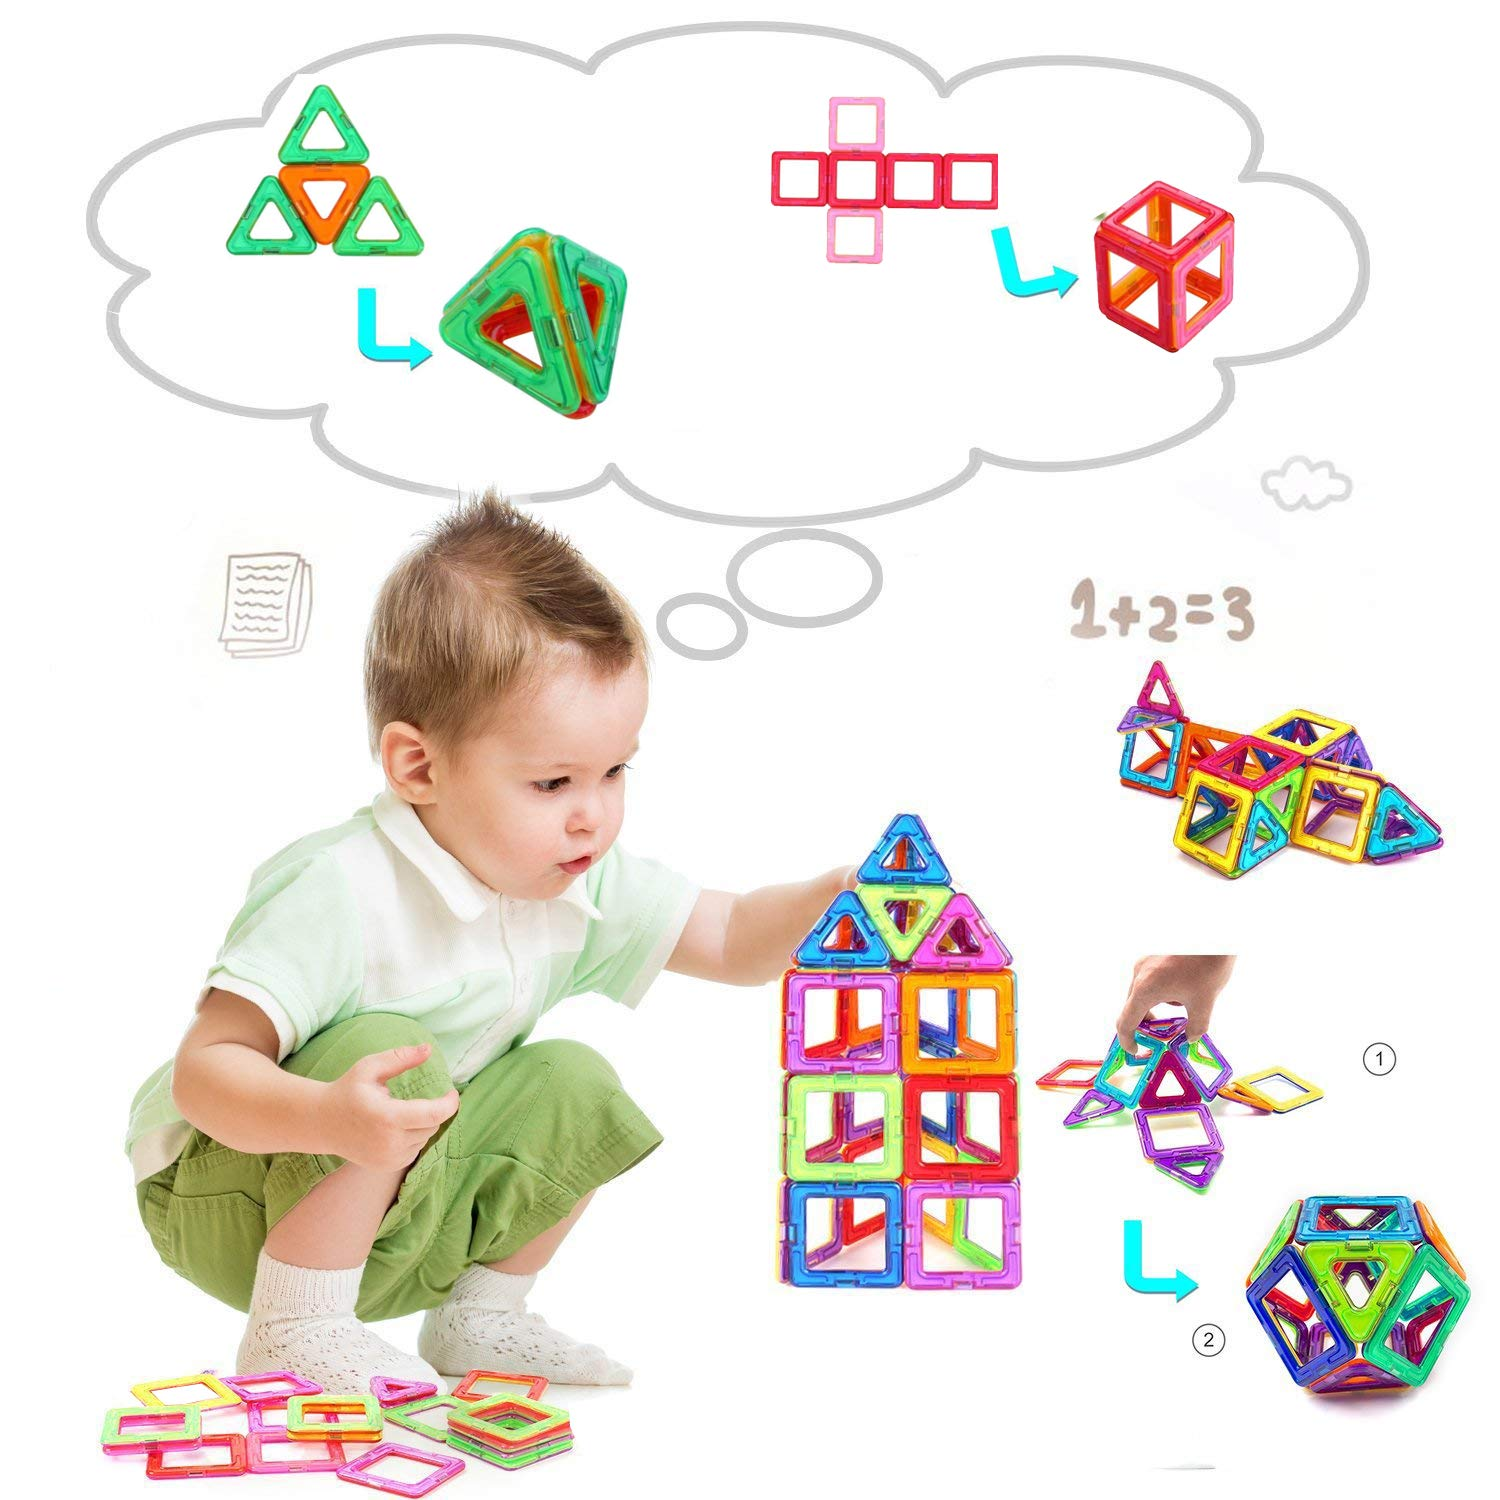 CONDIKS Magnetic Blocks 32PCS Magnetic Building Blocks Set Magnetic Toys Magnets for kids or Toddlers Magnetic Tiles STEM Educational Construction Puzzle Toys for Kids Age 3-8 Years Old boys girls YWQM